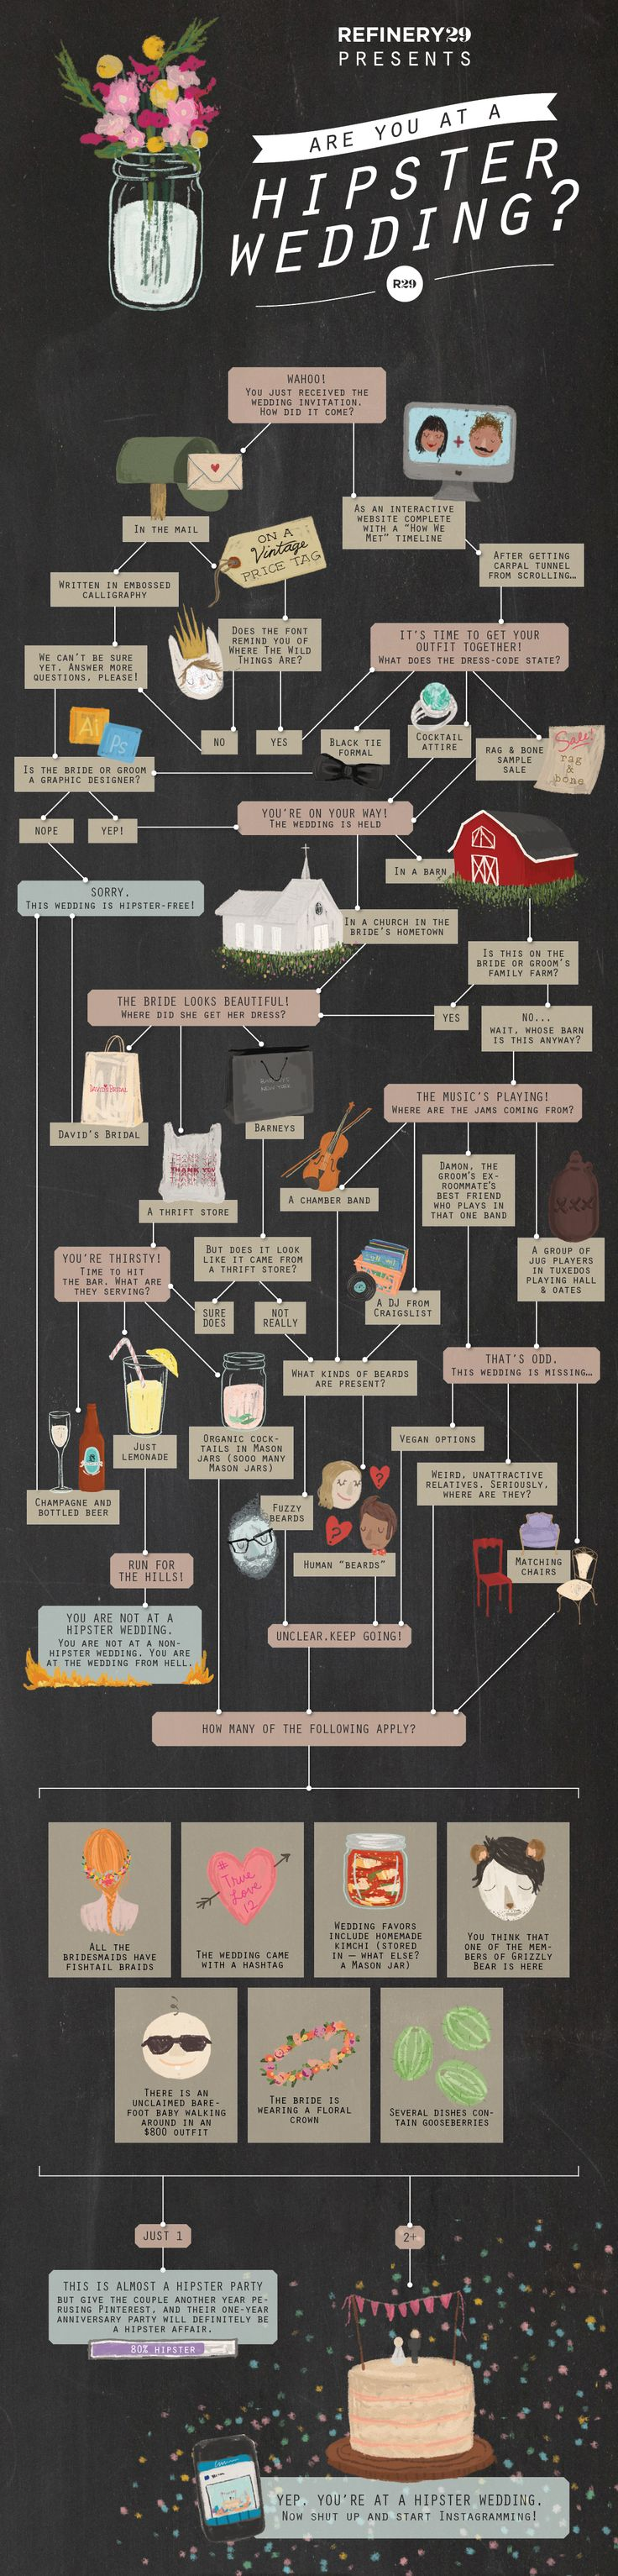 A very funny infographic - Are you at a hipster wedding? View the full infographic at https://static3.refinery29.com/bin/entry/c86/x/775103/hipster-wedding-final-large.jpg Via Refinery 29.